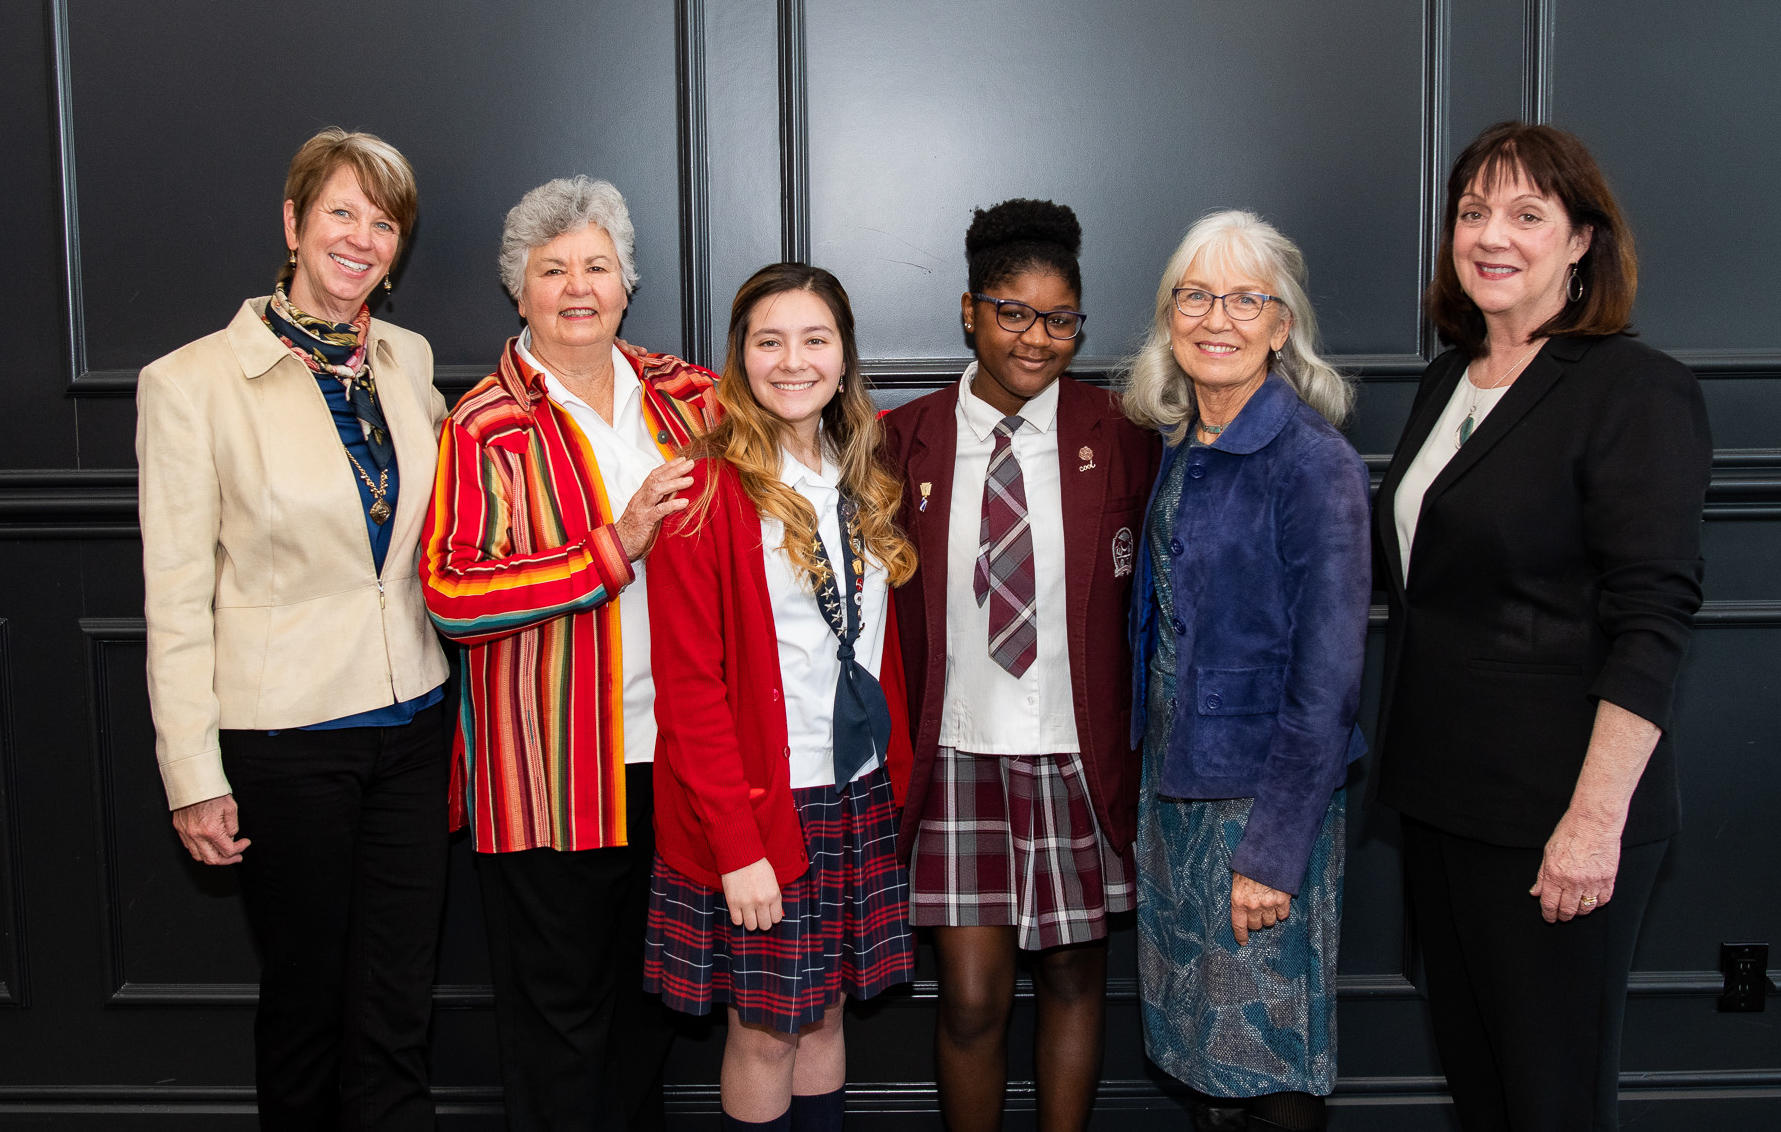 Honorees and Students